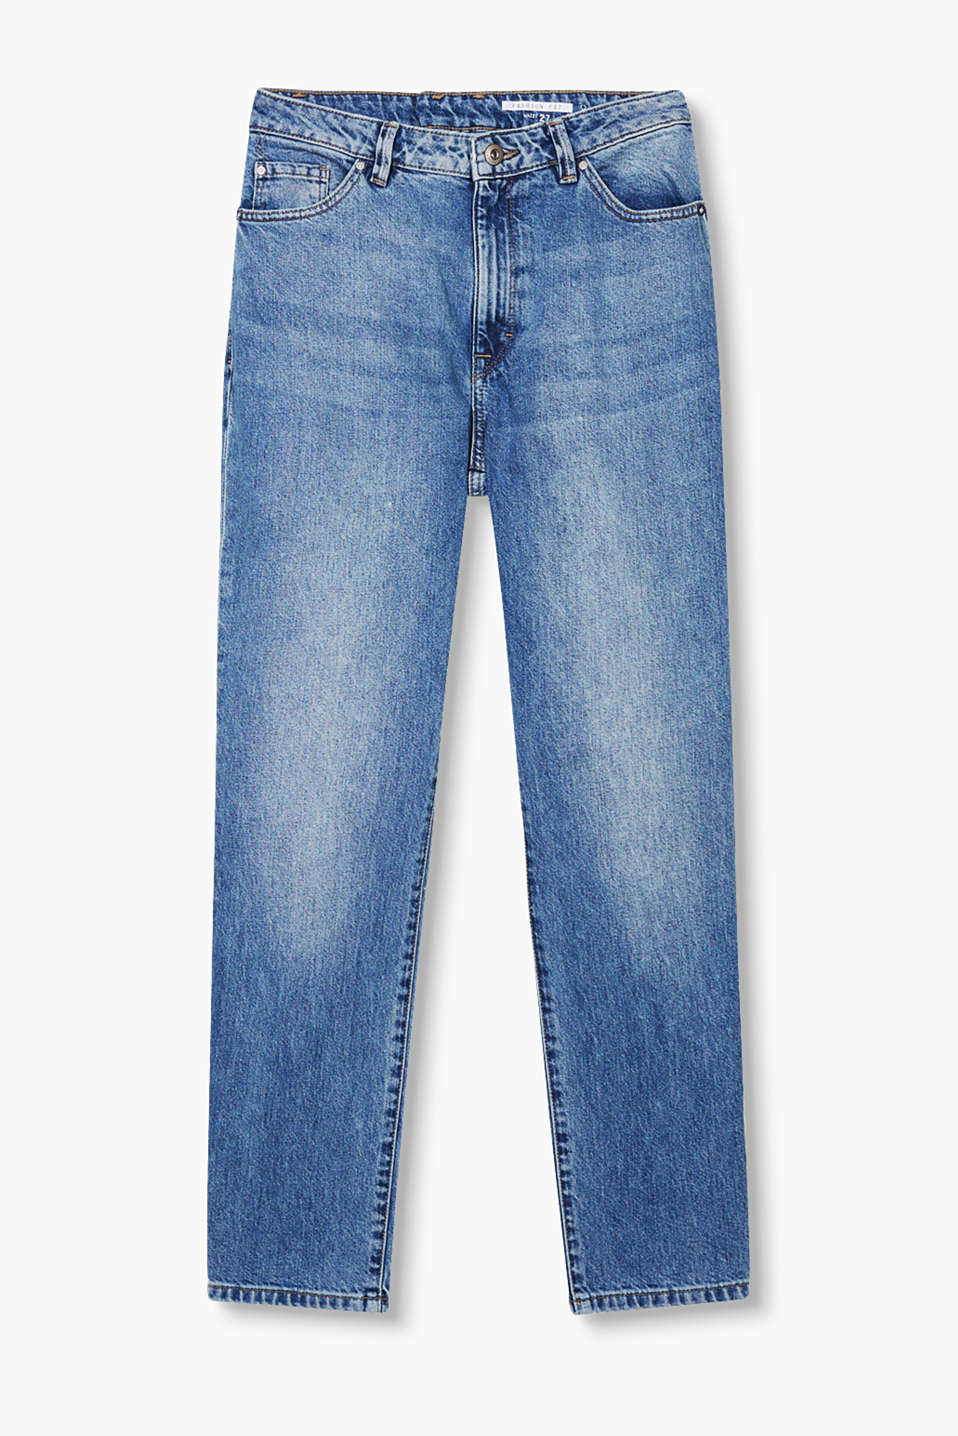 Super trendy mom jeans in a relaxed fit with a high waistband